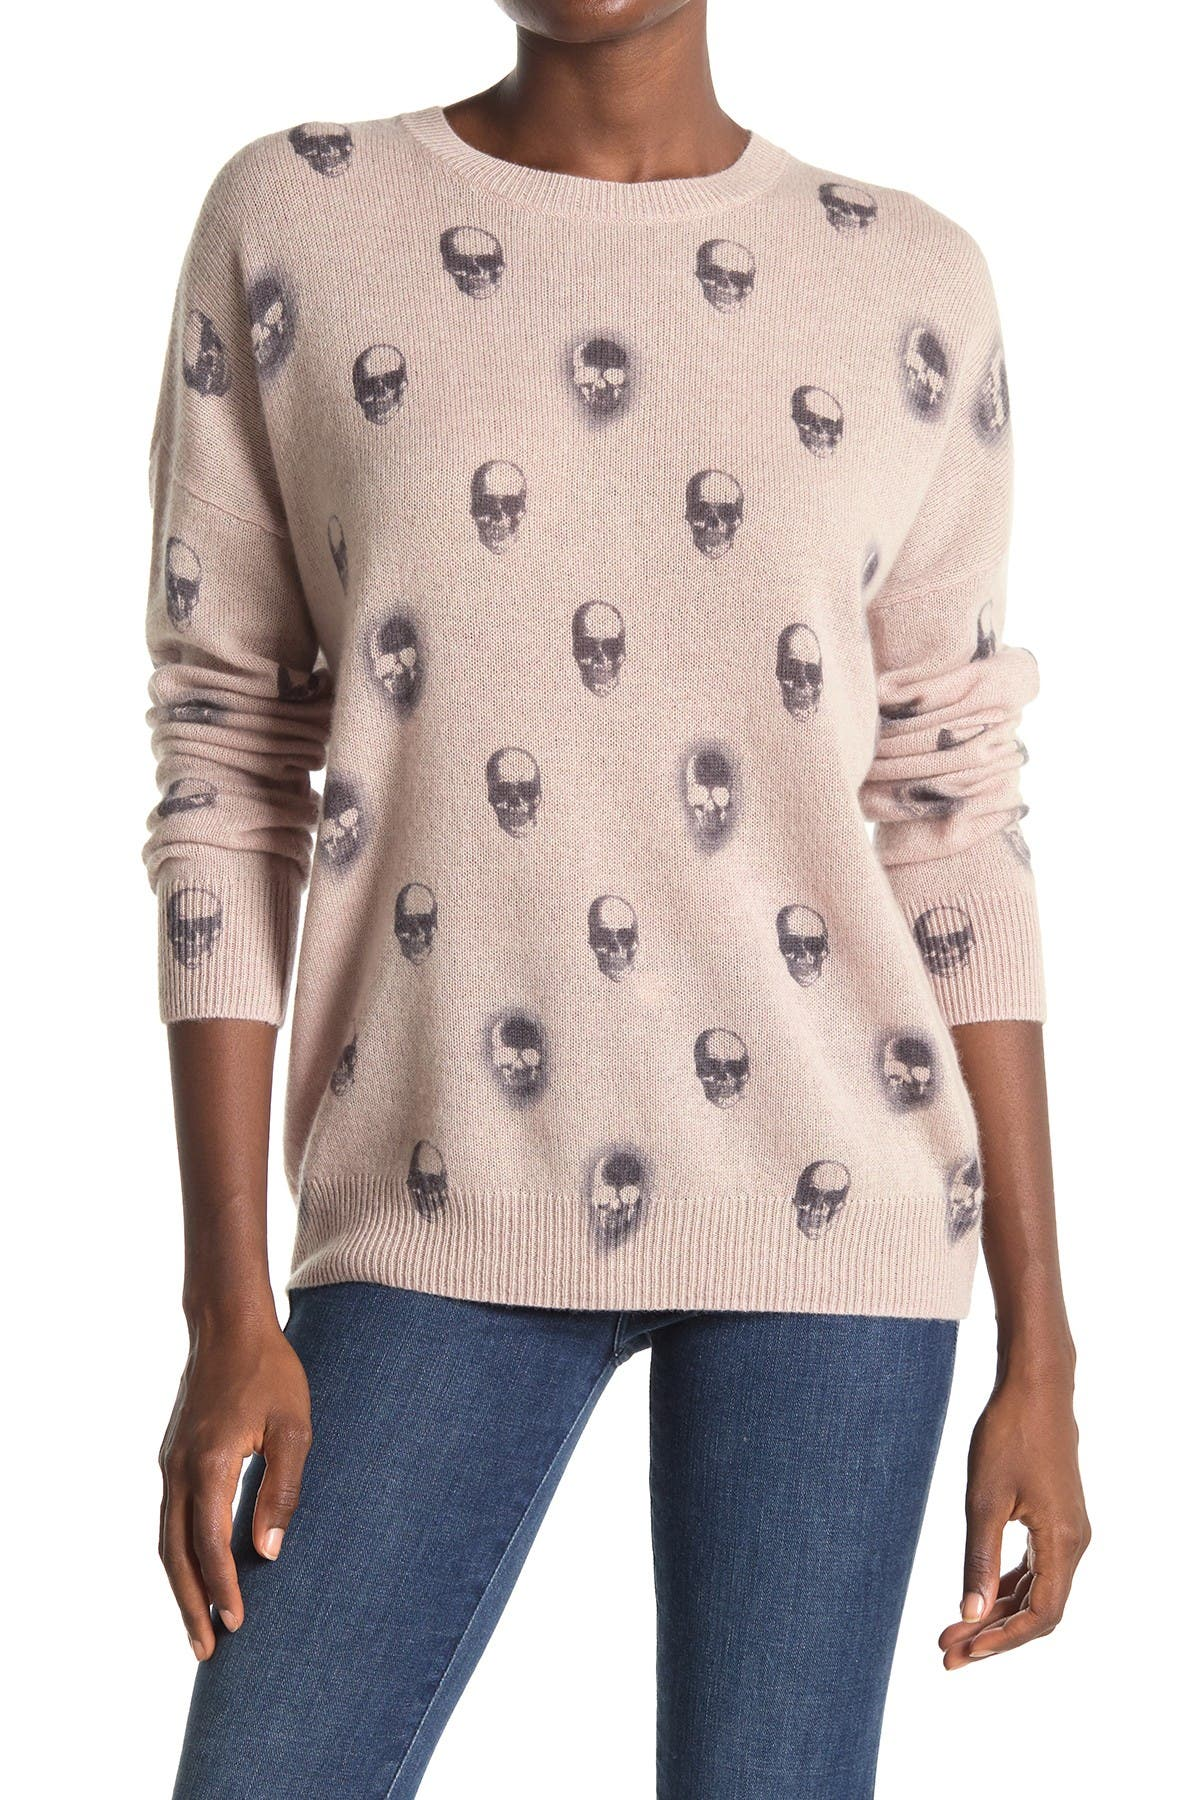 Image of SKULL CASHMERE Cara X-Ray Skull Print Cashmere Sweater